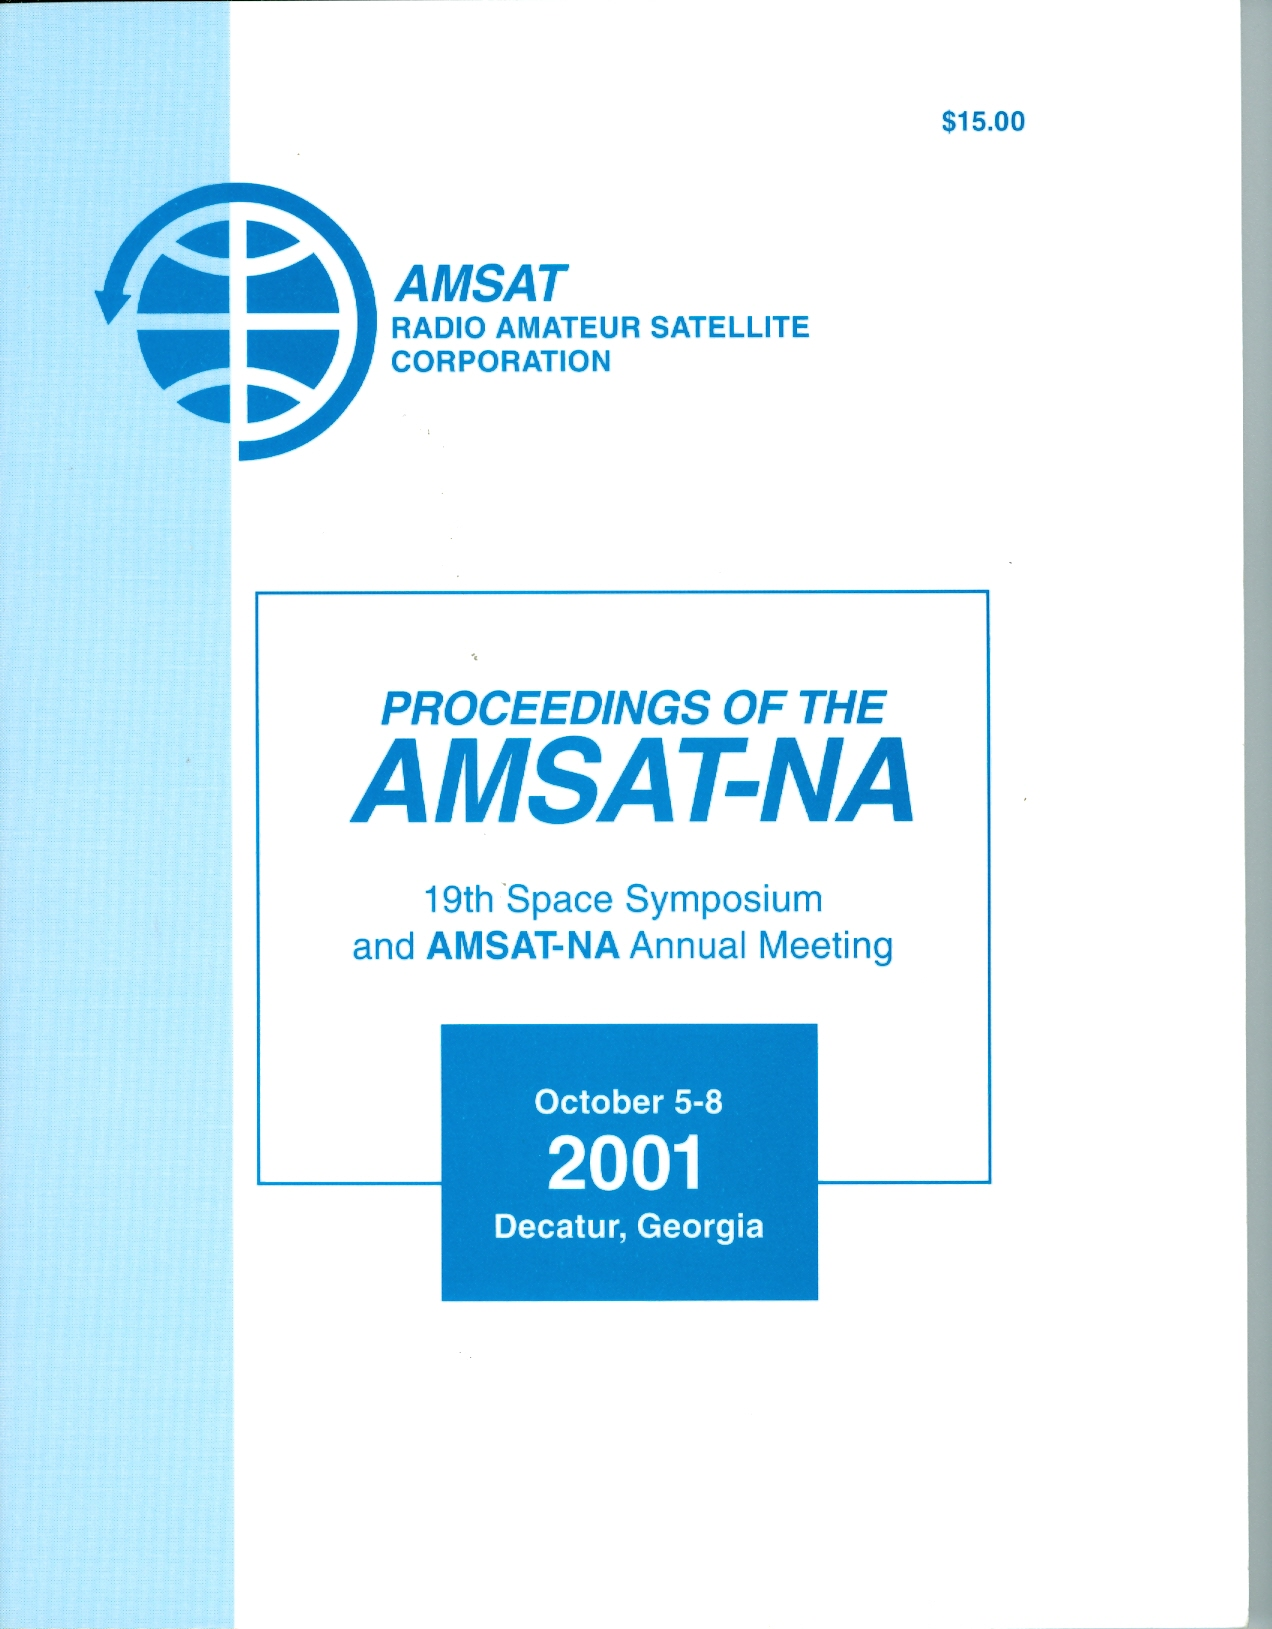 Proceedings of the AMSAT-NA 19th Space Symposium and AMSAT-NA Annual Meeting